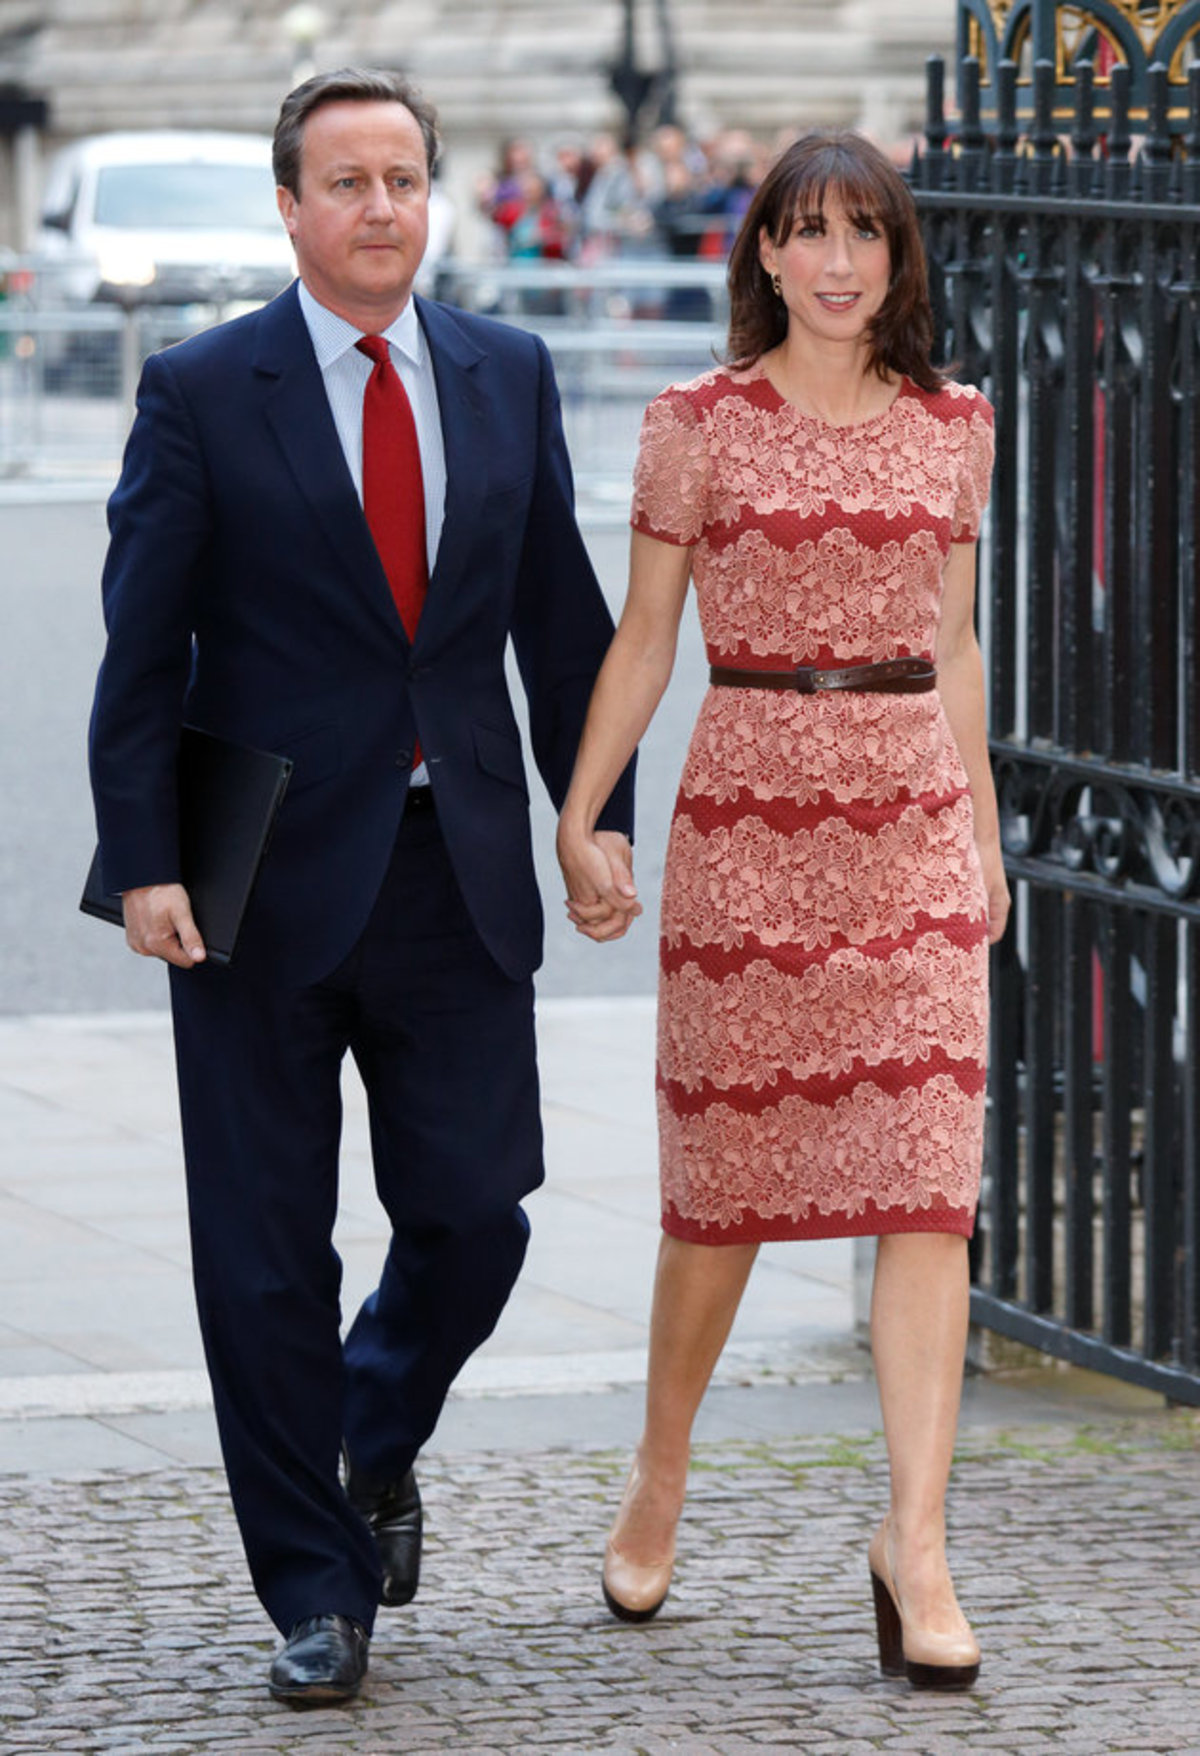 LONDON, UNITED KINGDOM - JUNE 30: (EMBARGOED FOR PUBLICATION IN UK NEWSPAPERS UNTIL 48 HOURS AFTER CREATE DATE AND TIME) Prime Minister David Cameron and wife Samantha Cameron attend a service on the eve of the centenary of The Battle of The Somme at Westminster Abbey on June 30, 2016 in London, England. (Photo by Max Mumby/Indigo/Getty Images)